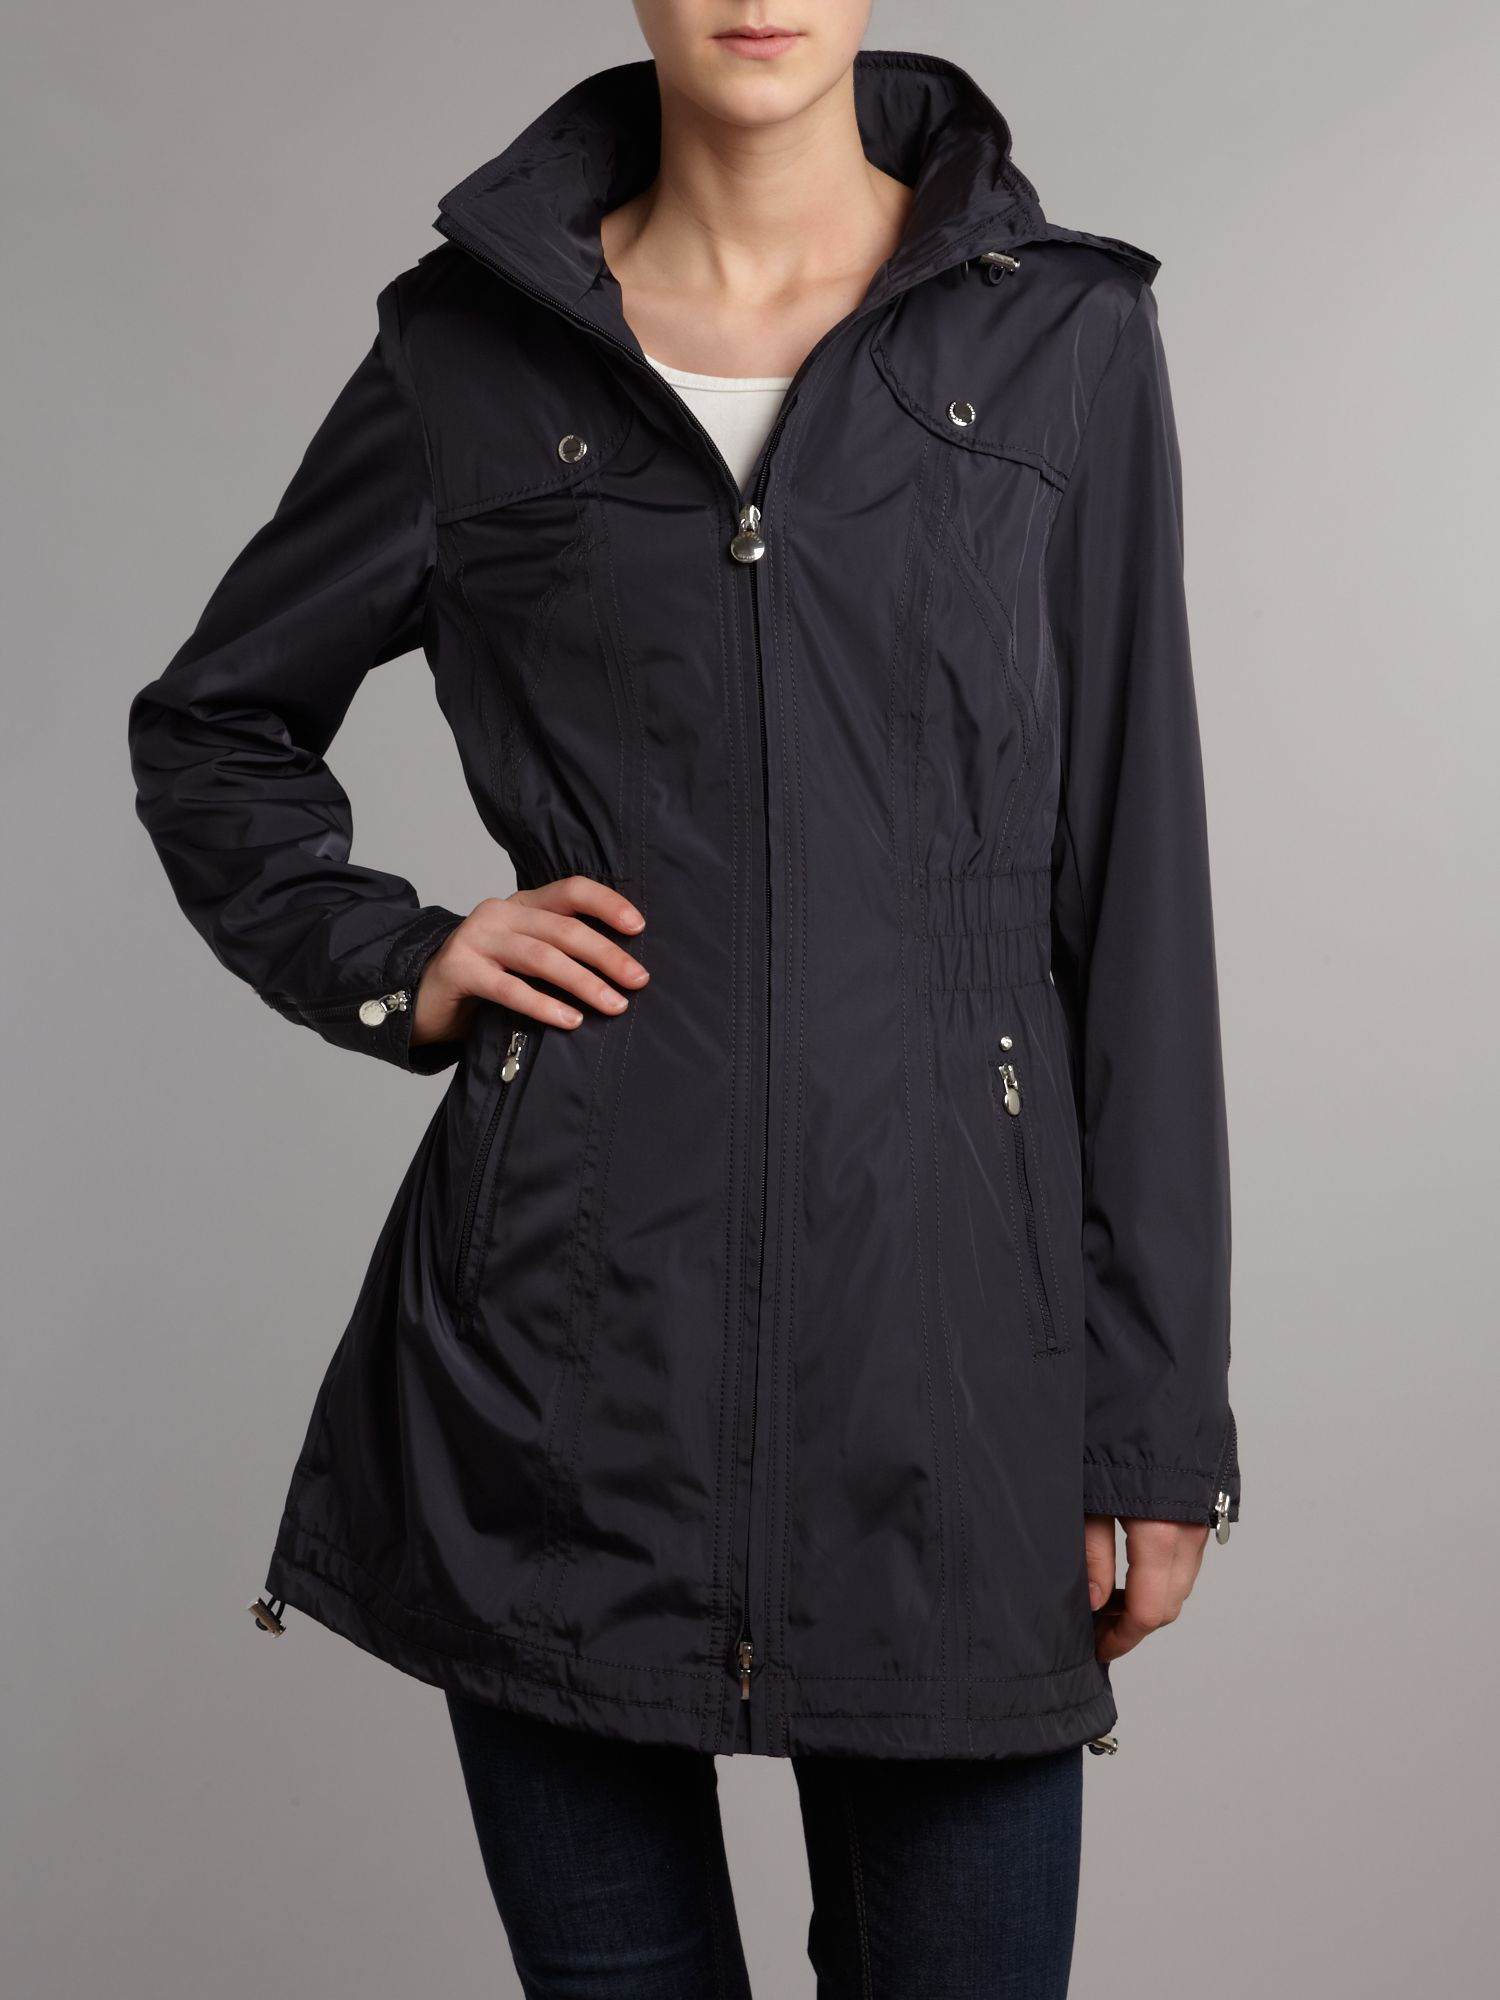 Pack away hooded jacket